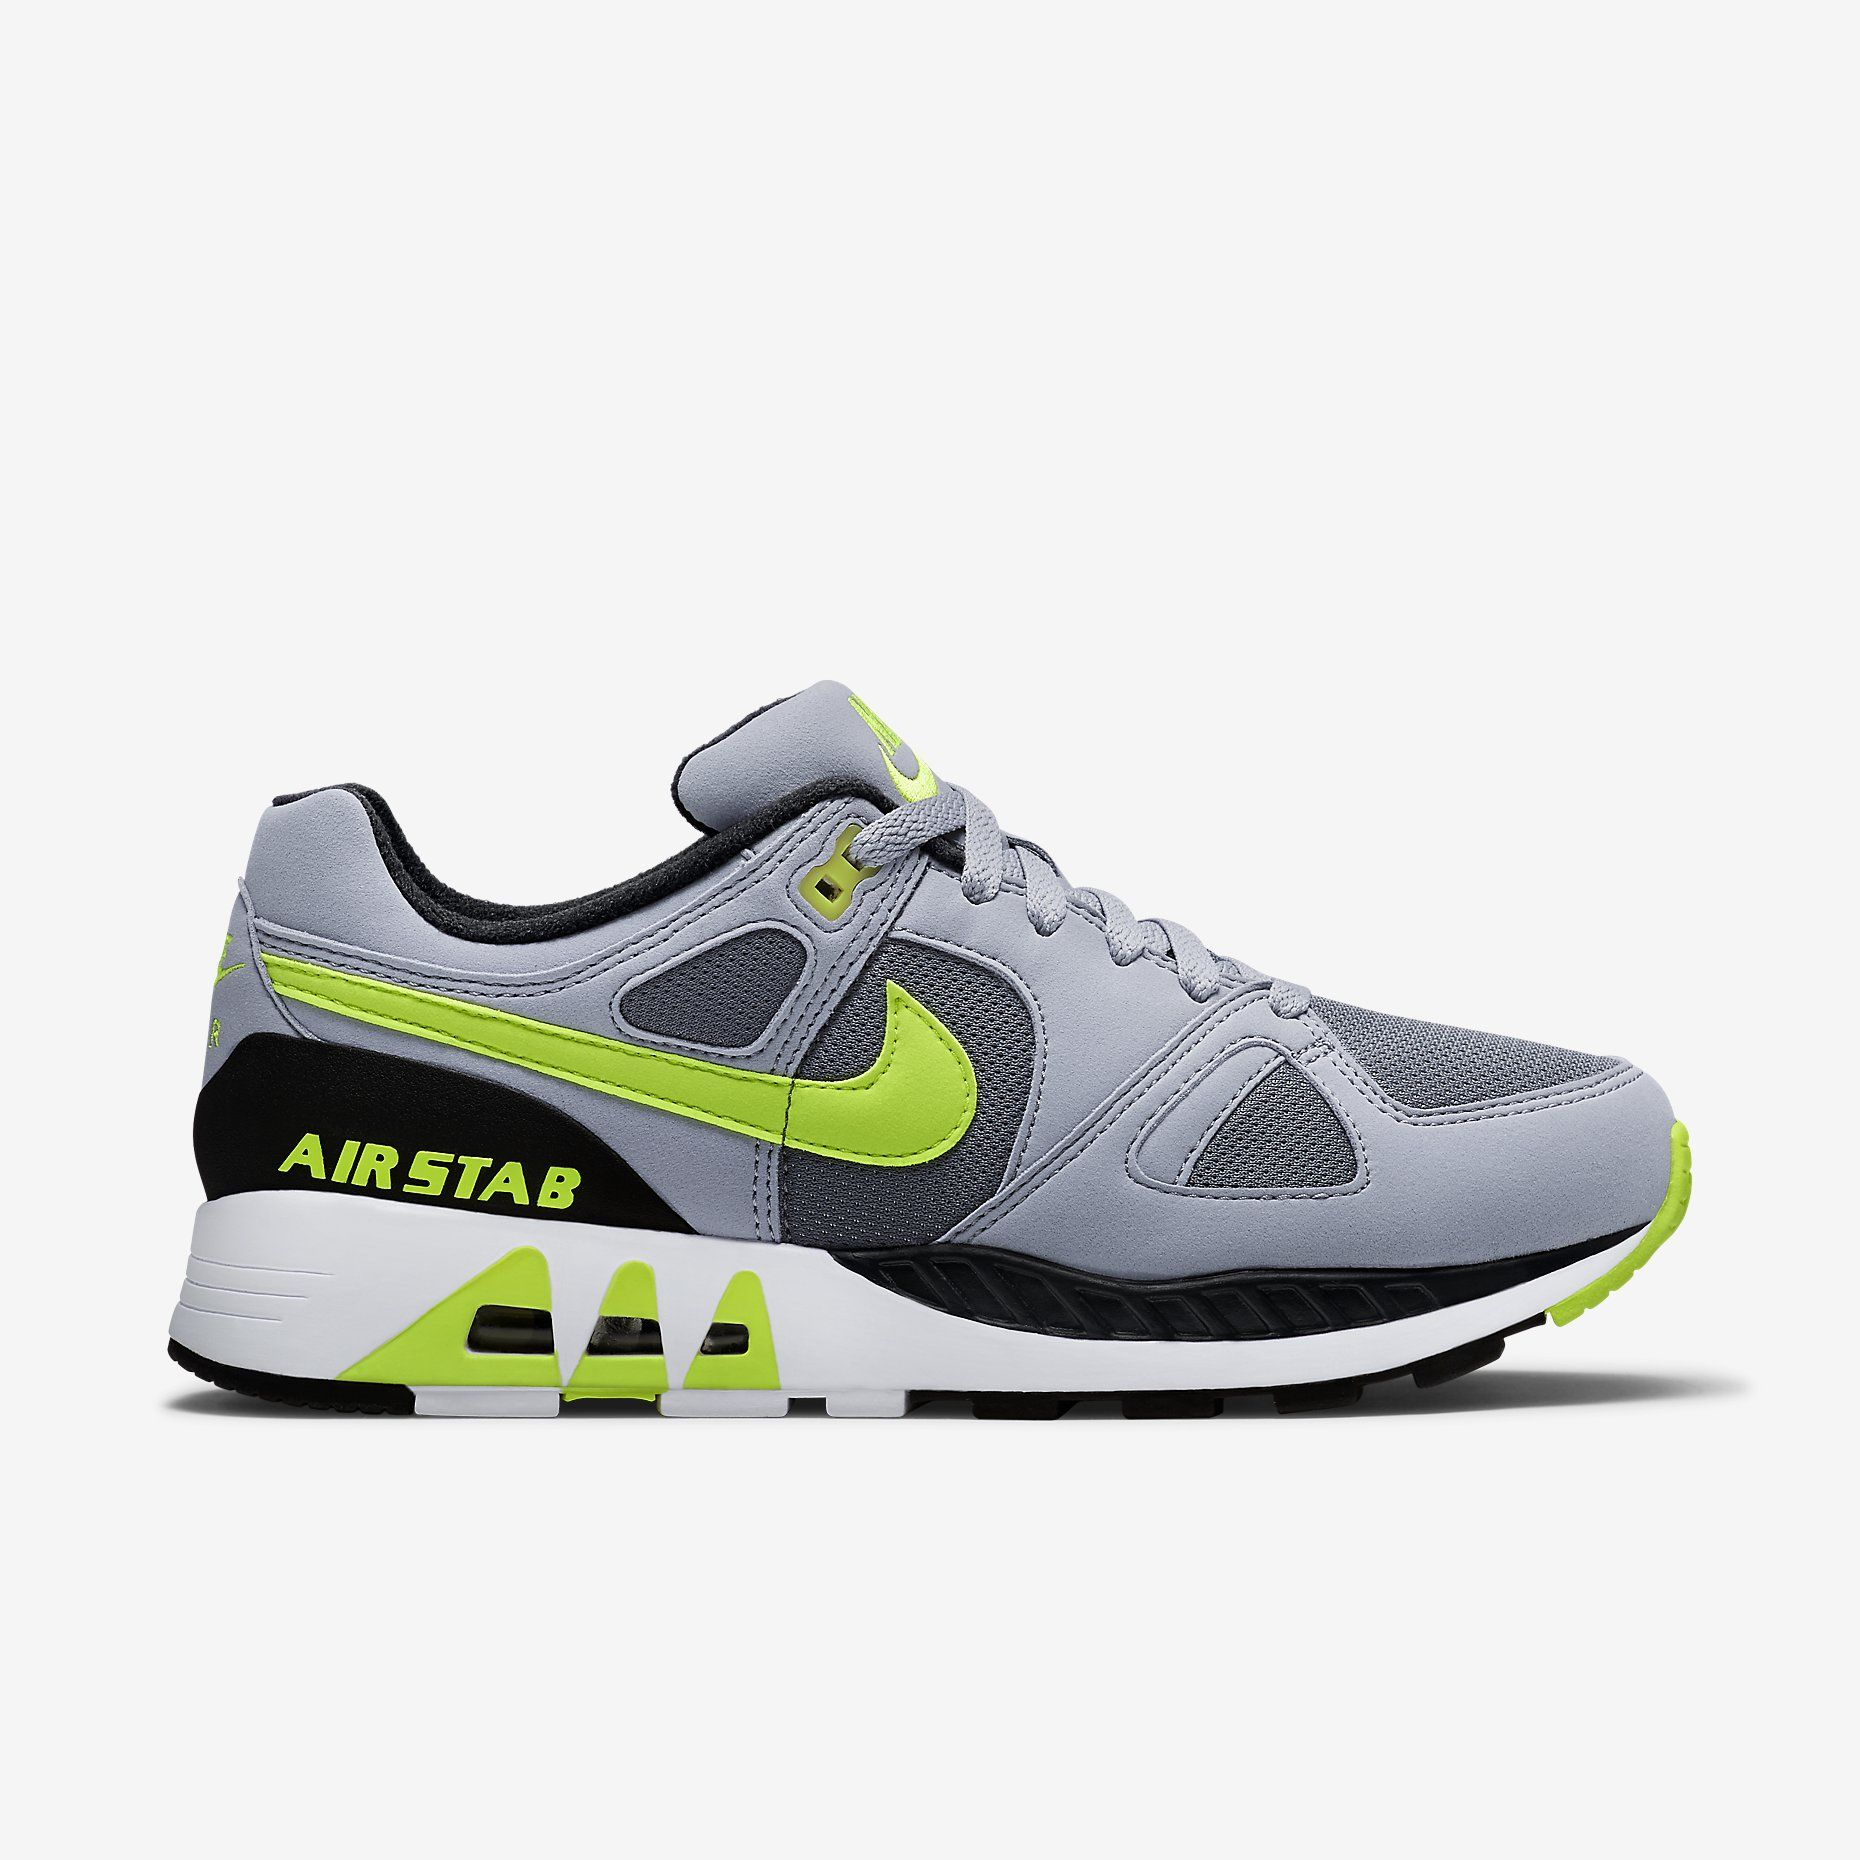 hot sale online 896c1 9dc9c Nike Air Stab – Chaussure pour Homme. Nike Store FR